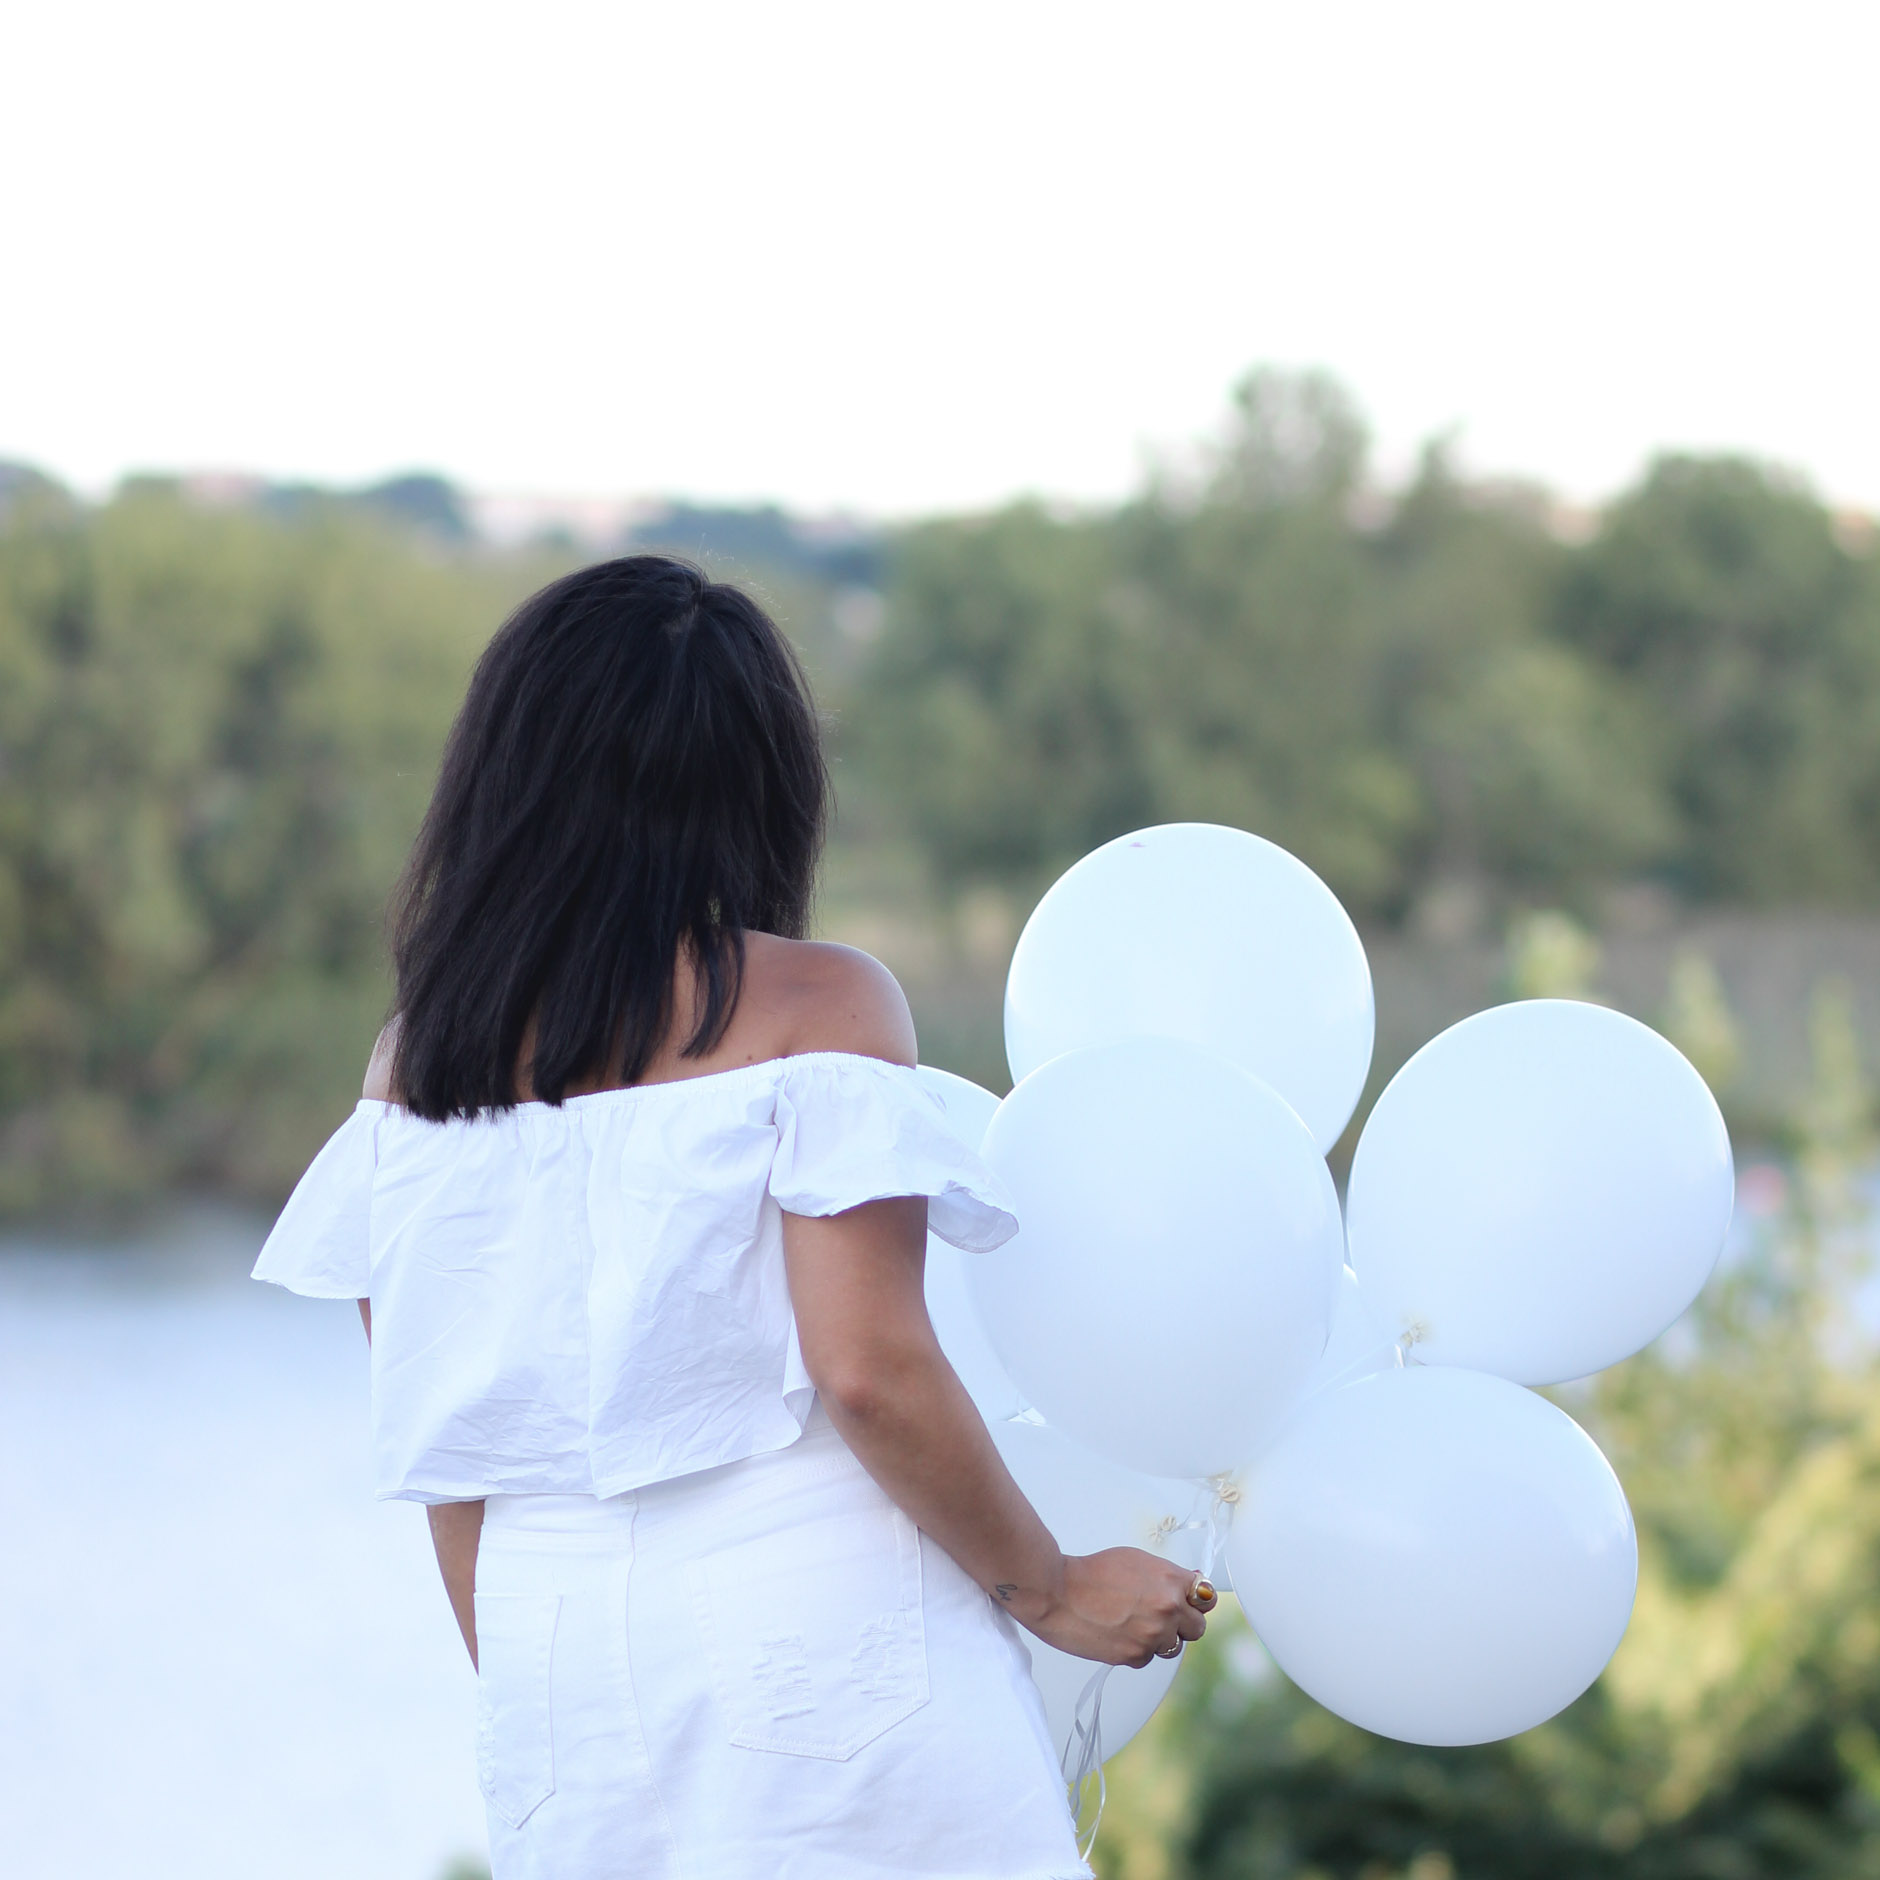 back of lifestyle blogger naty michele holding white balloons